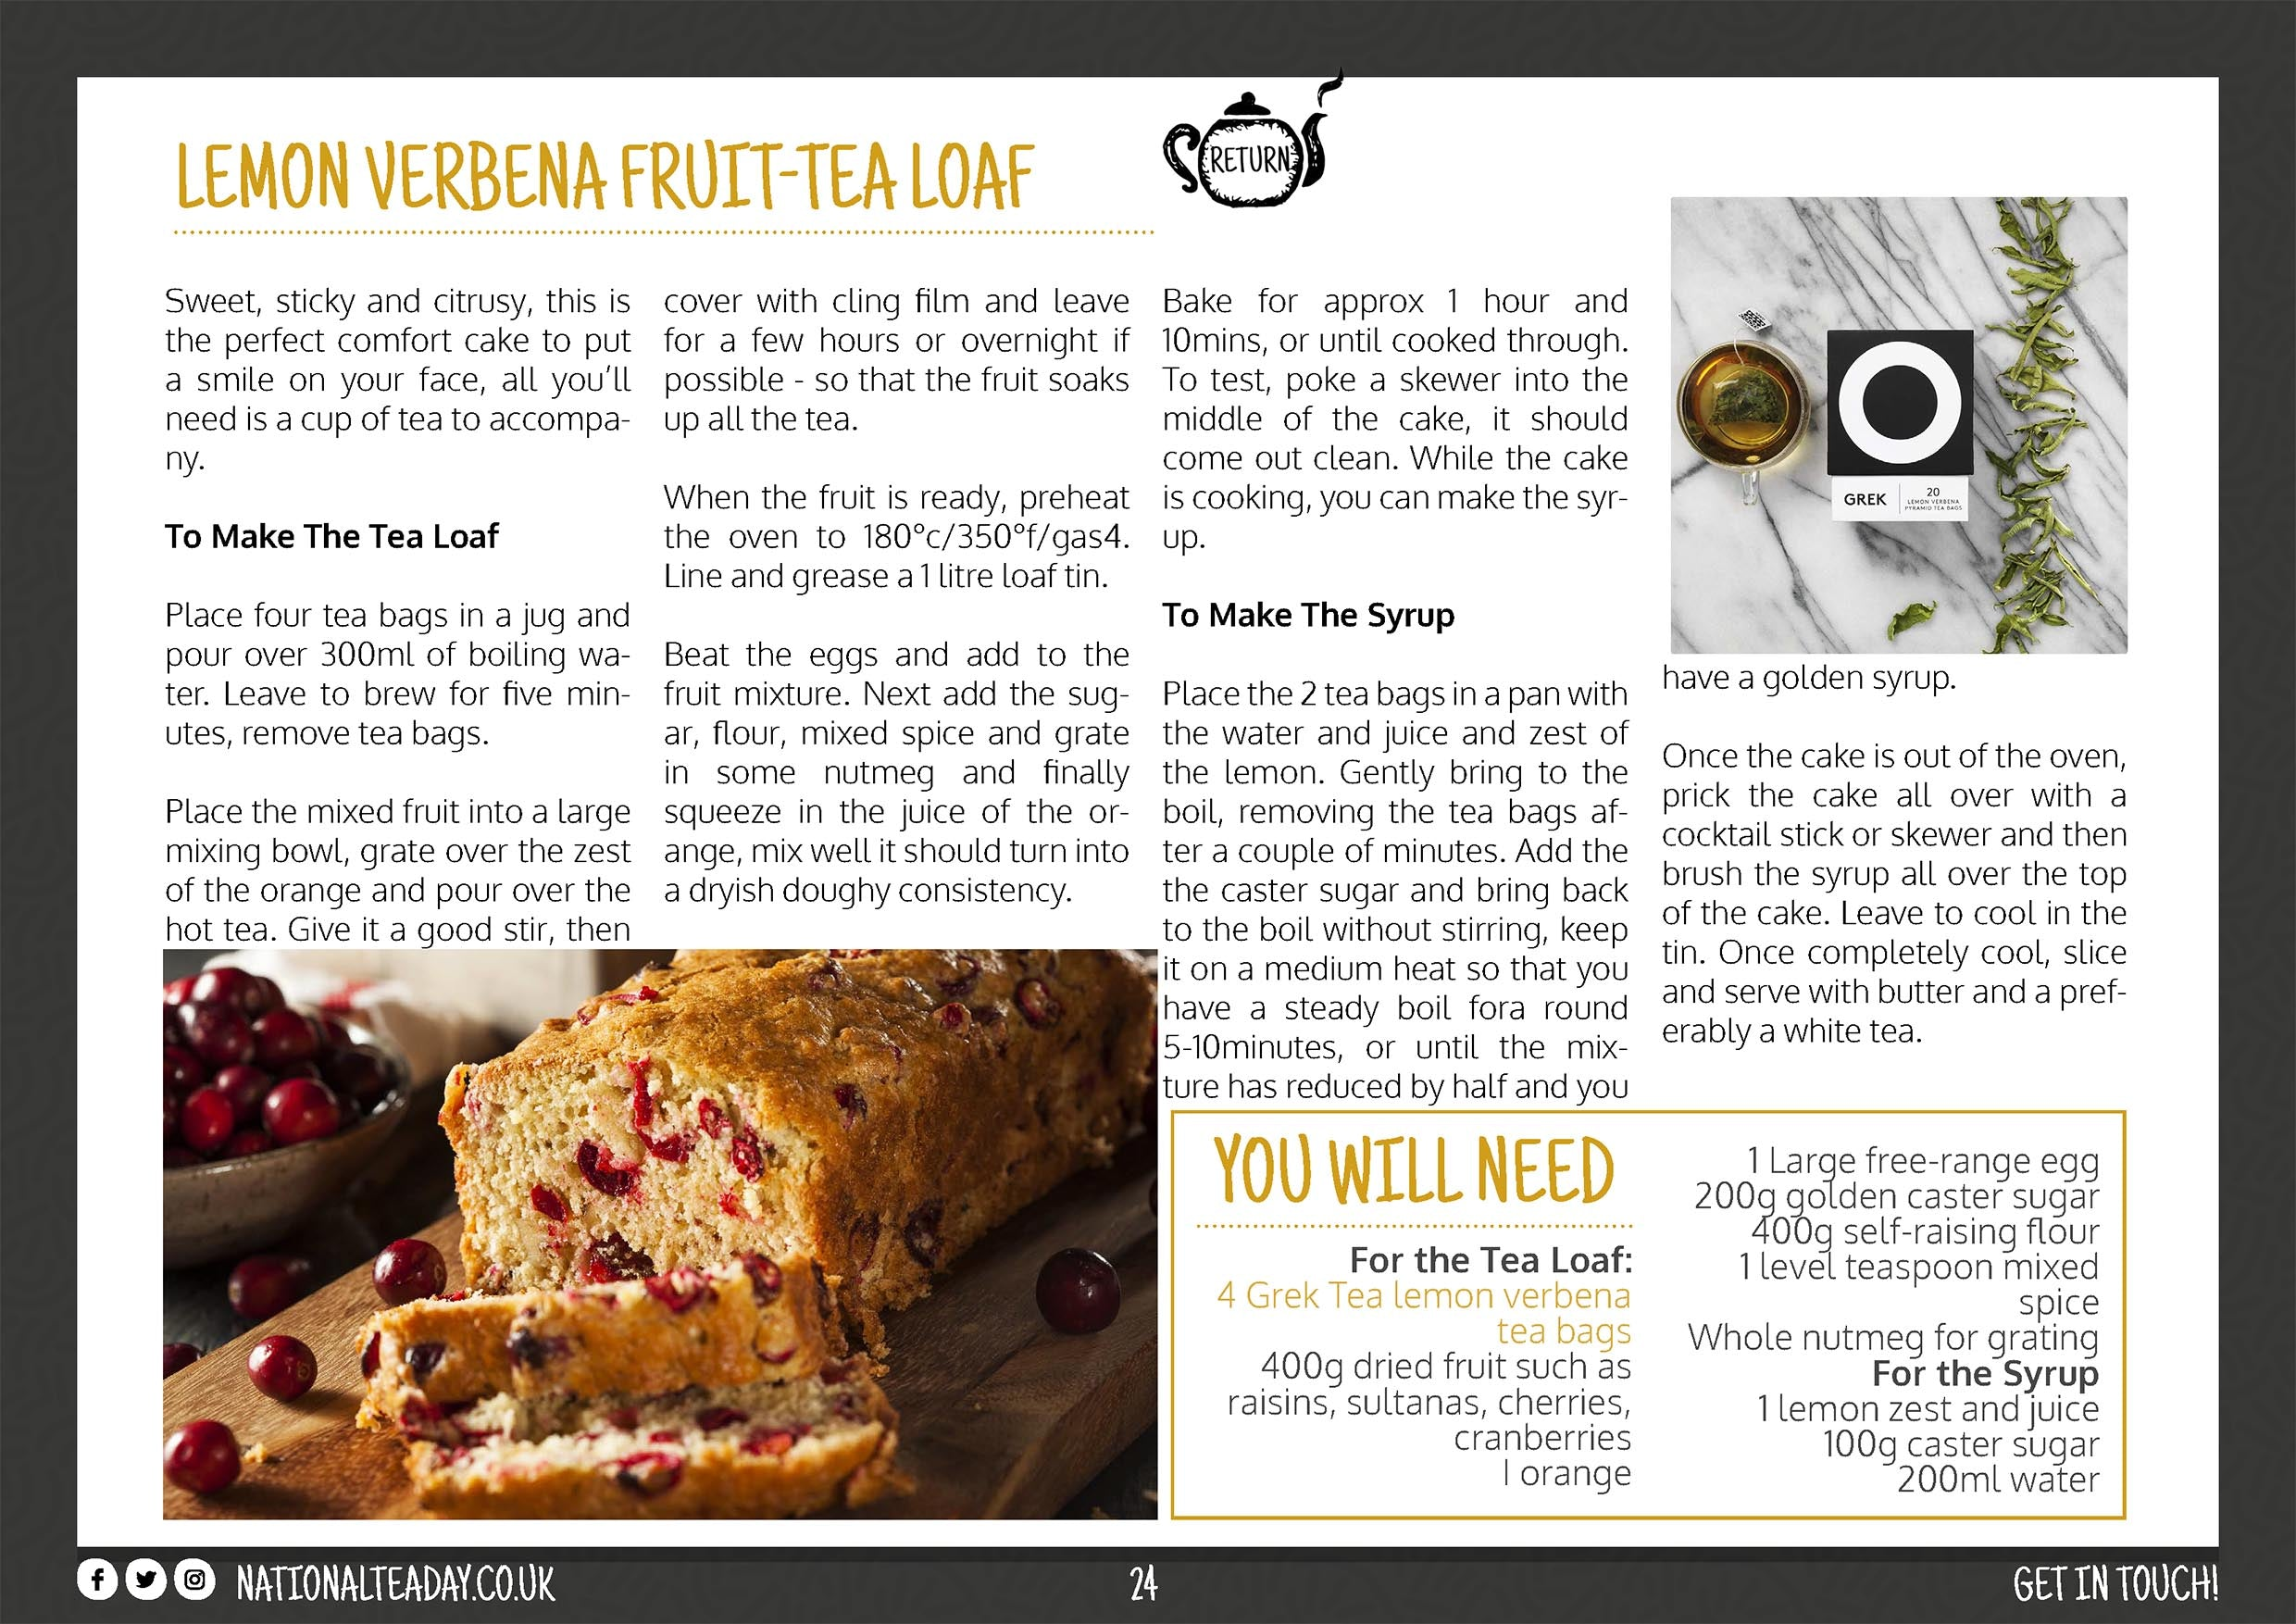 Fruit cake with lemon verbena tea recipe